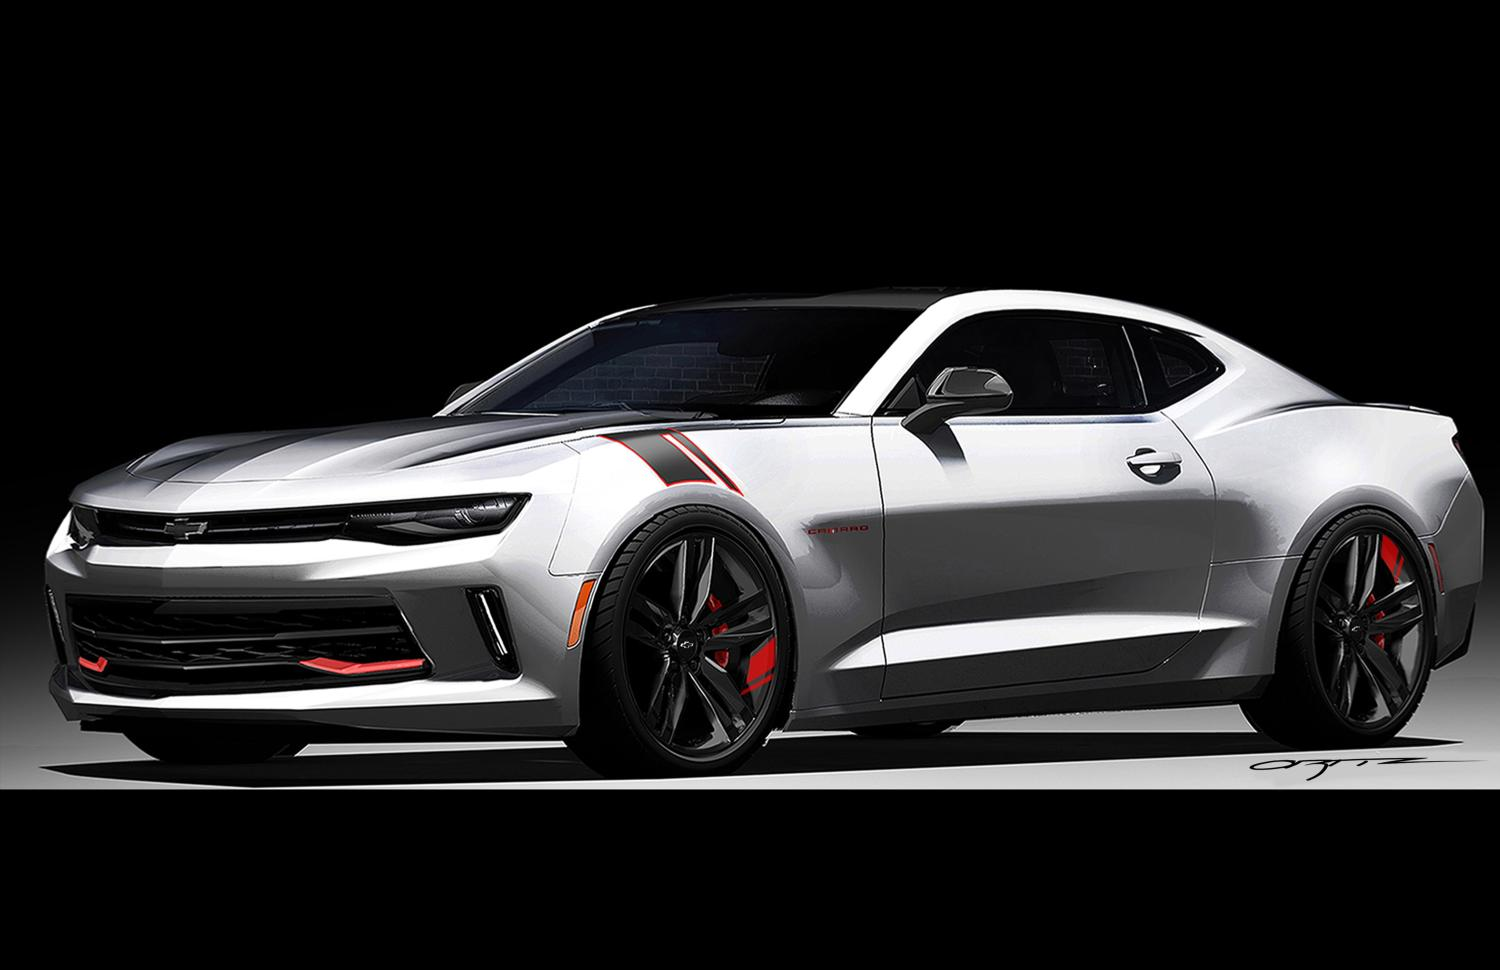 chevy charging into sema with red line concepts autotalk. Black Bedroom Furniture Sets. Home Design Ideas